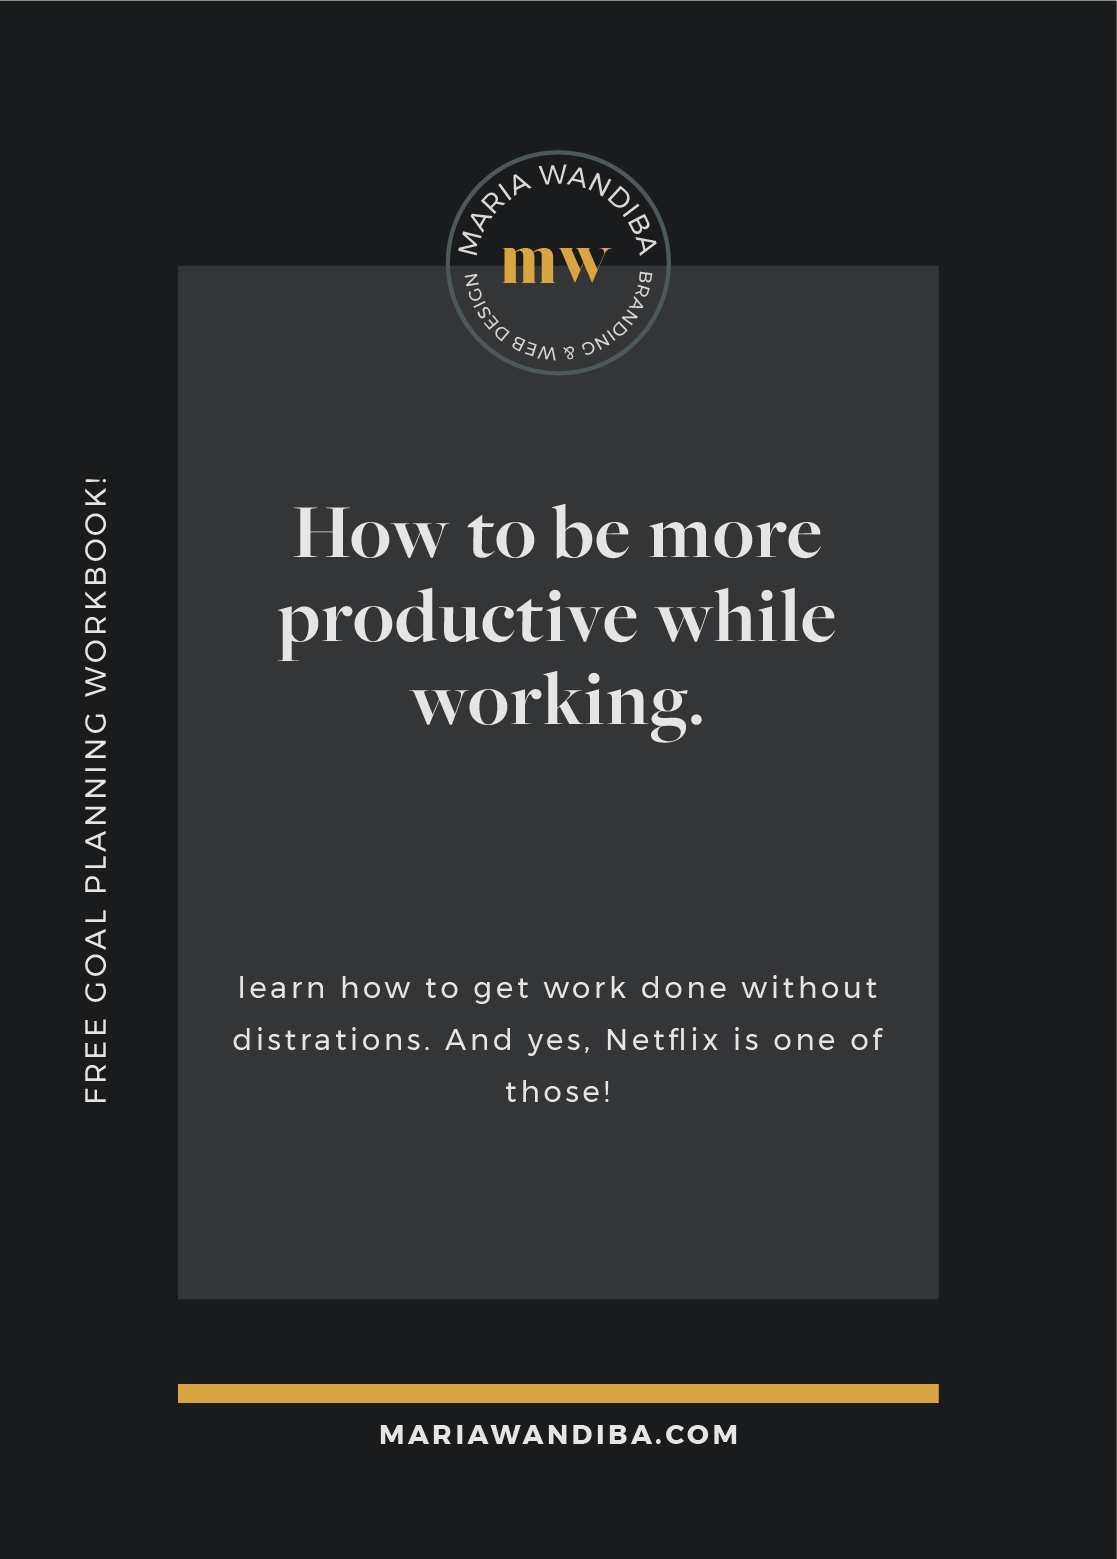 how-to-be-more-productive-while-working.png